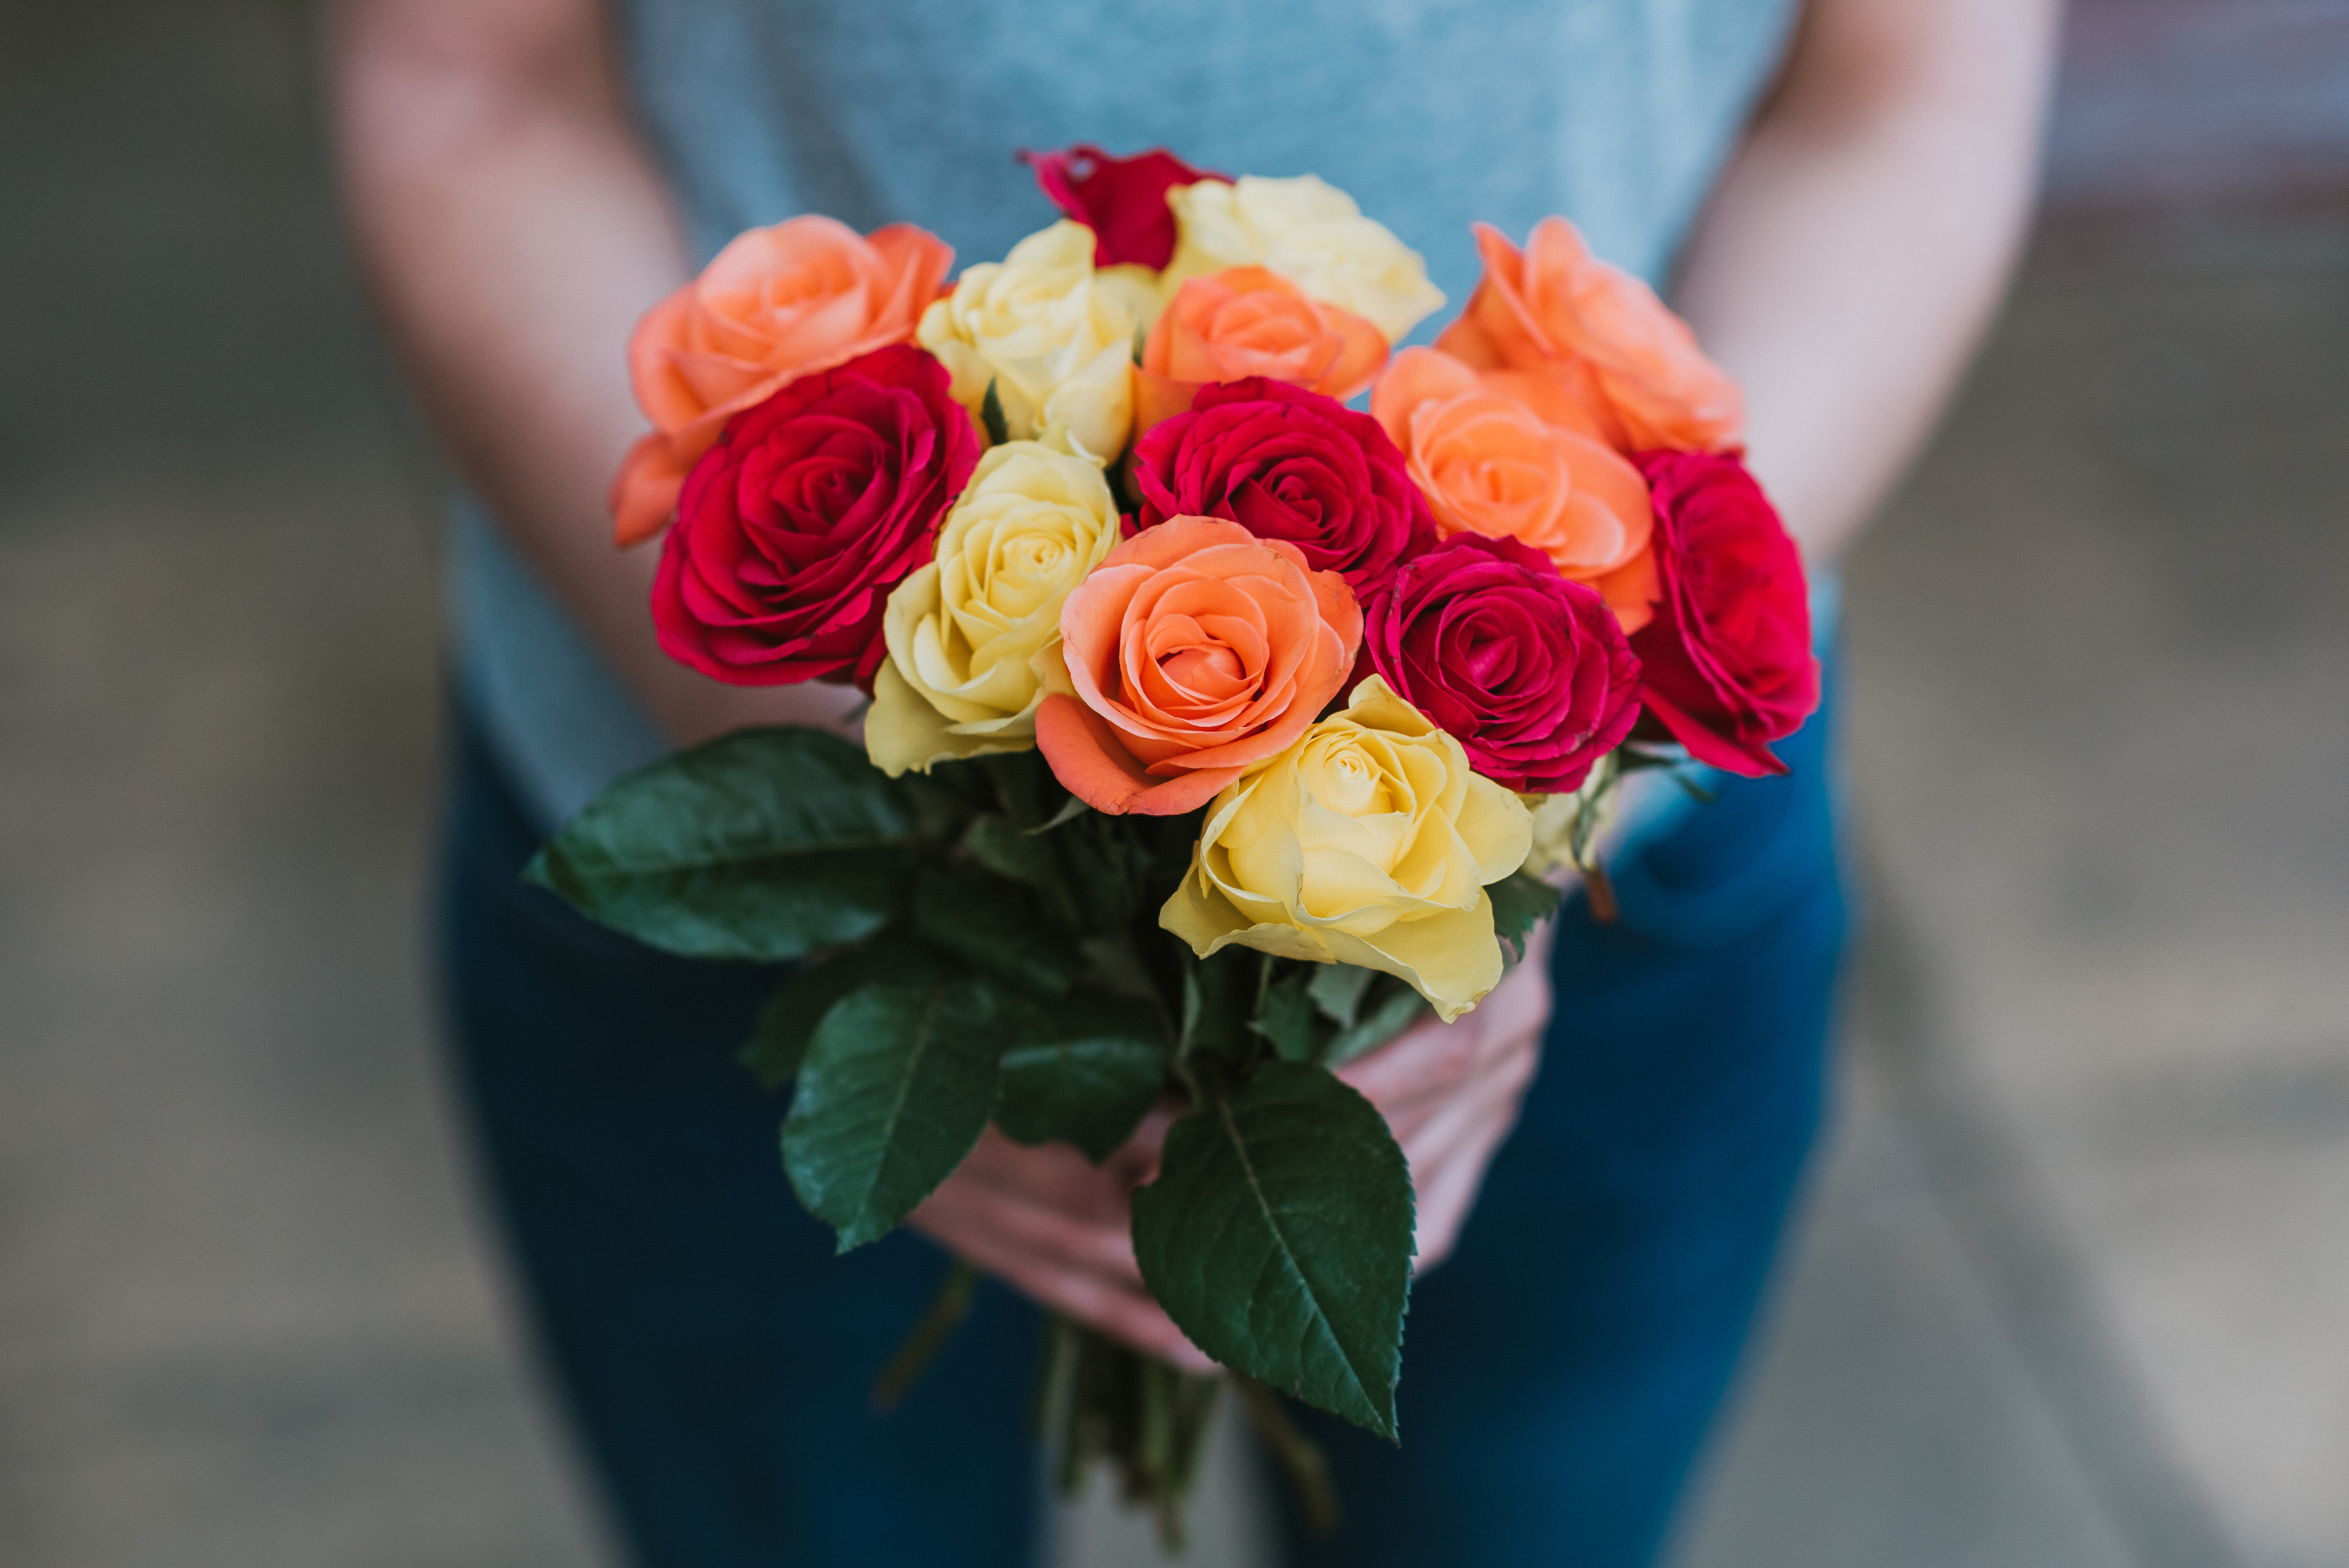 How to choose a bouquet of roses as a gift